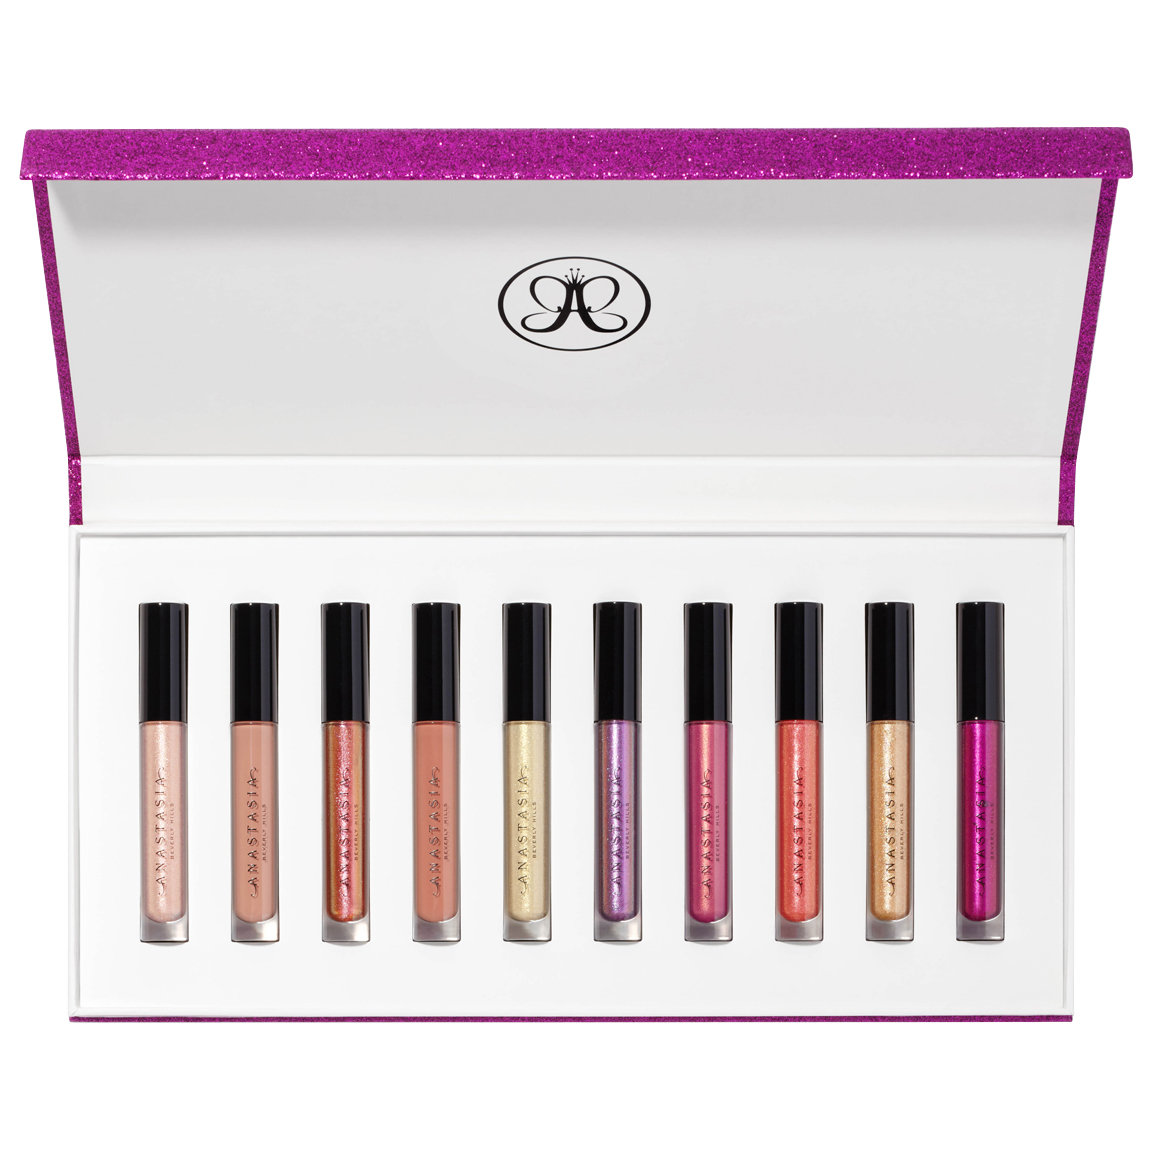 10 full-size shades of Anastasia Beverly Hills Lip Gloss (a $160 value)